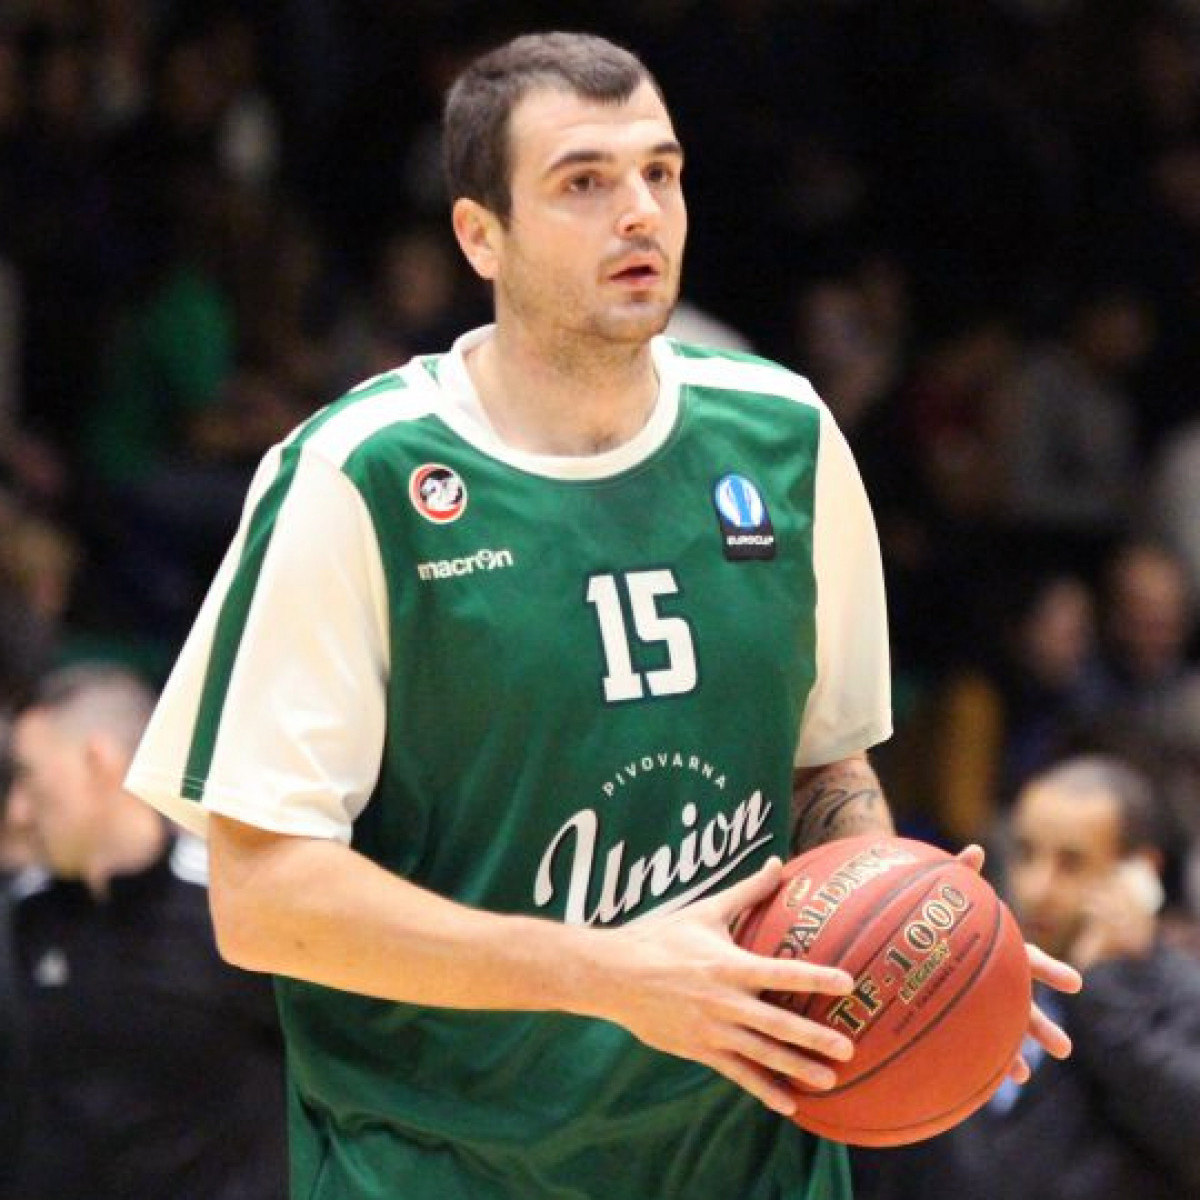 Photo of Sava Lesic, 2015-2016 season